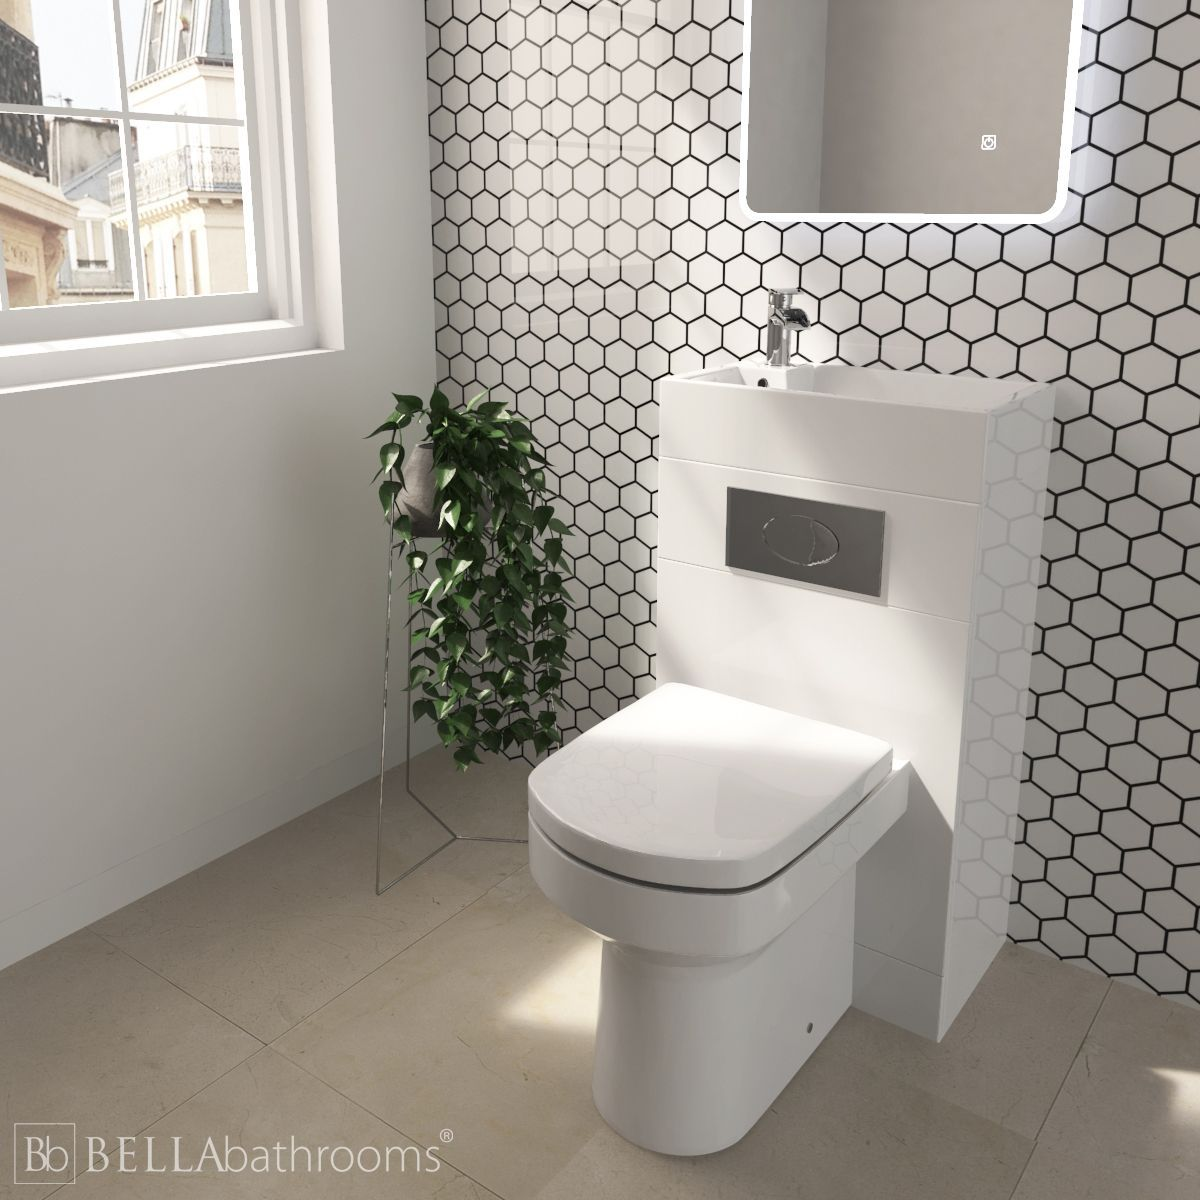 Cassellie Futura Gloss White Space Saving Toilet With Sink On Top 500mm Space Saving Toilet Toilet Sink Small Toilet Room